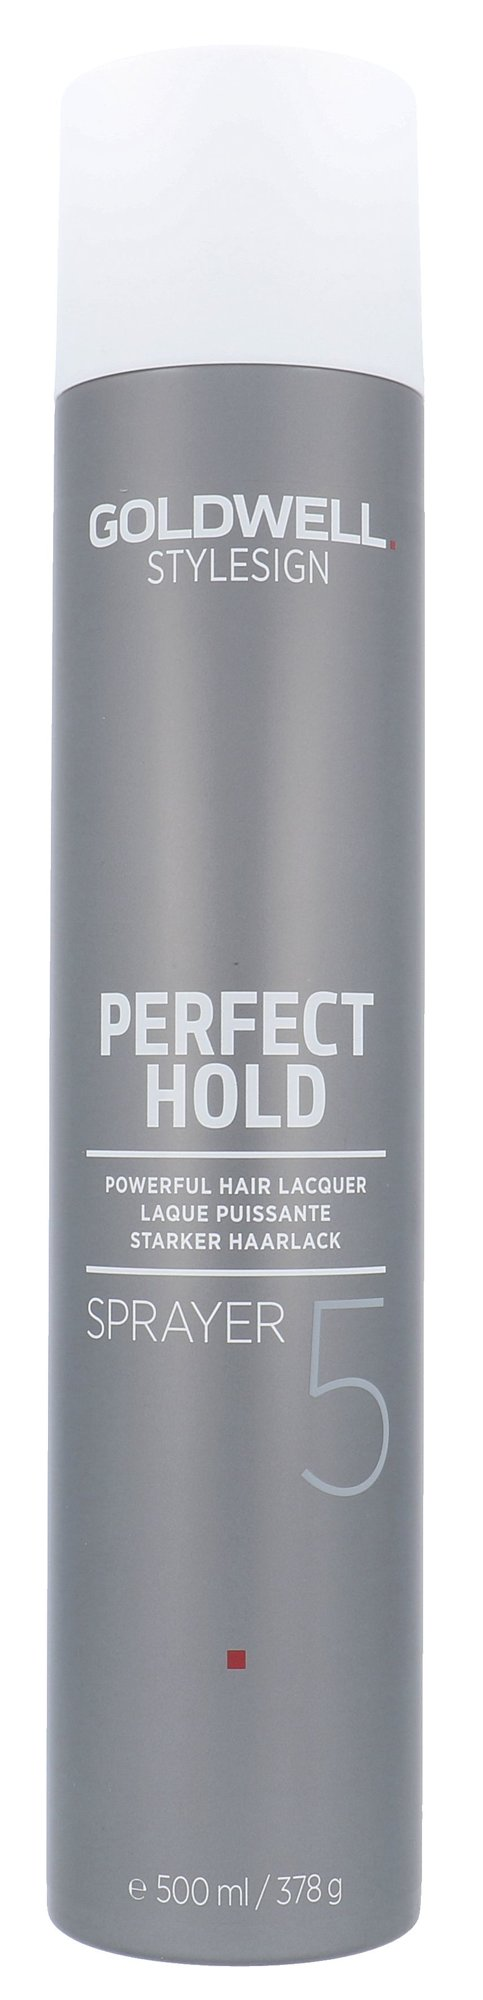 Goldwell Style Sign Perfect Hold Sprayer Cosmetic 500ml